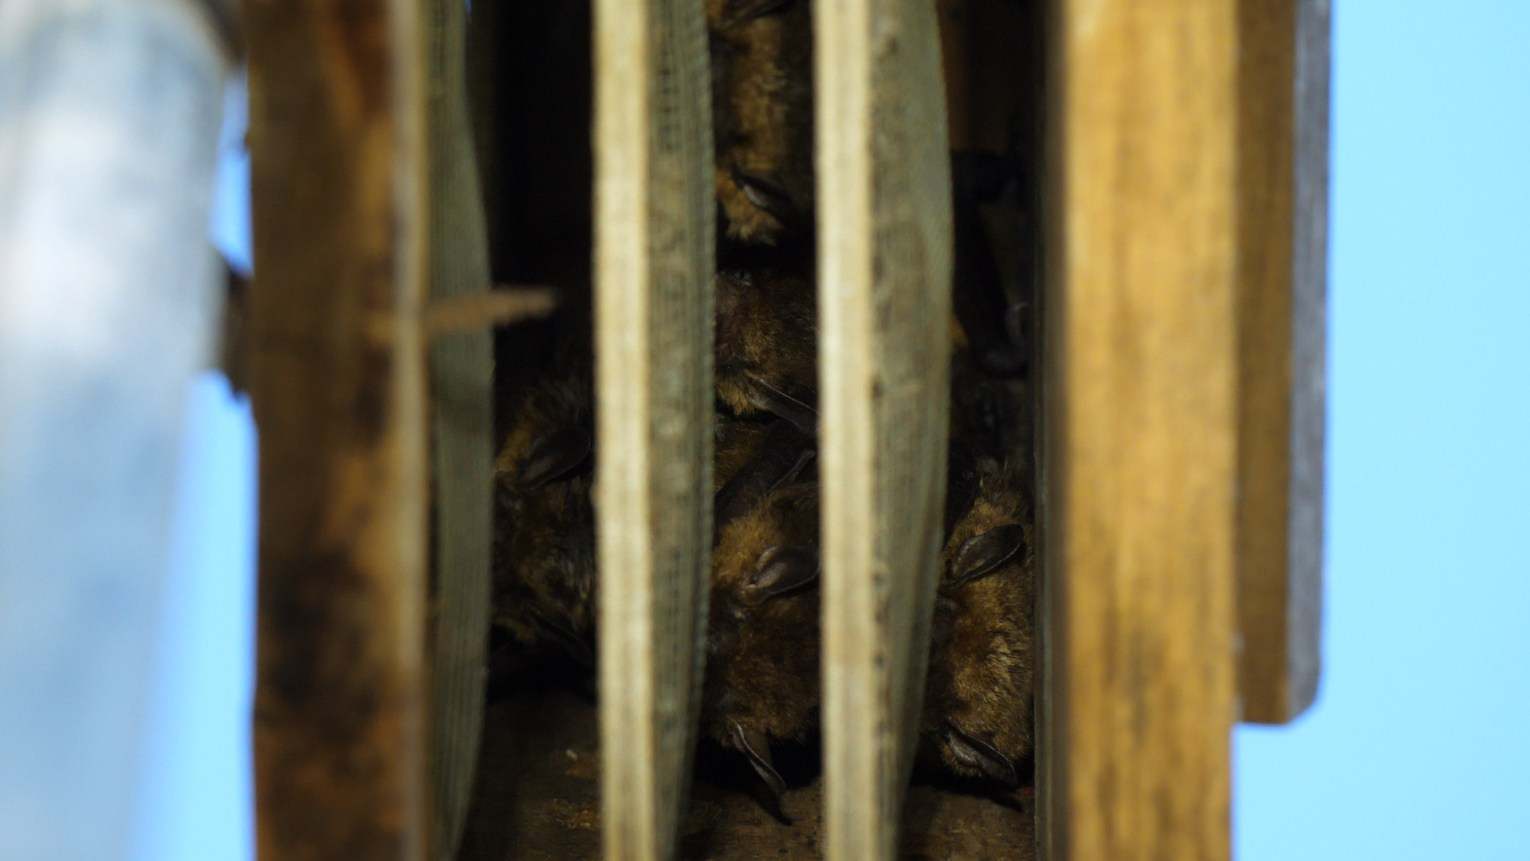 Bats in bat houses still from video for georgia wild bats heidi dnr